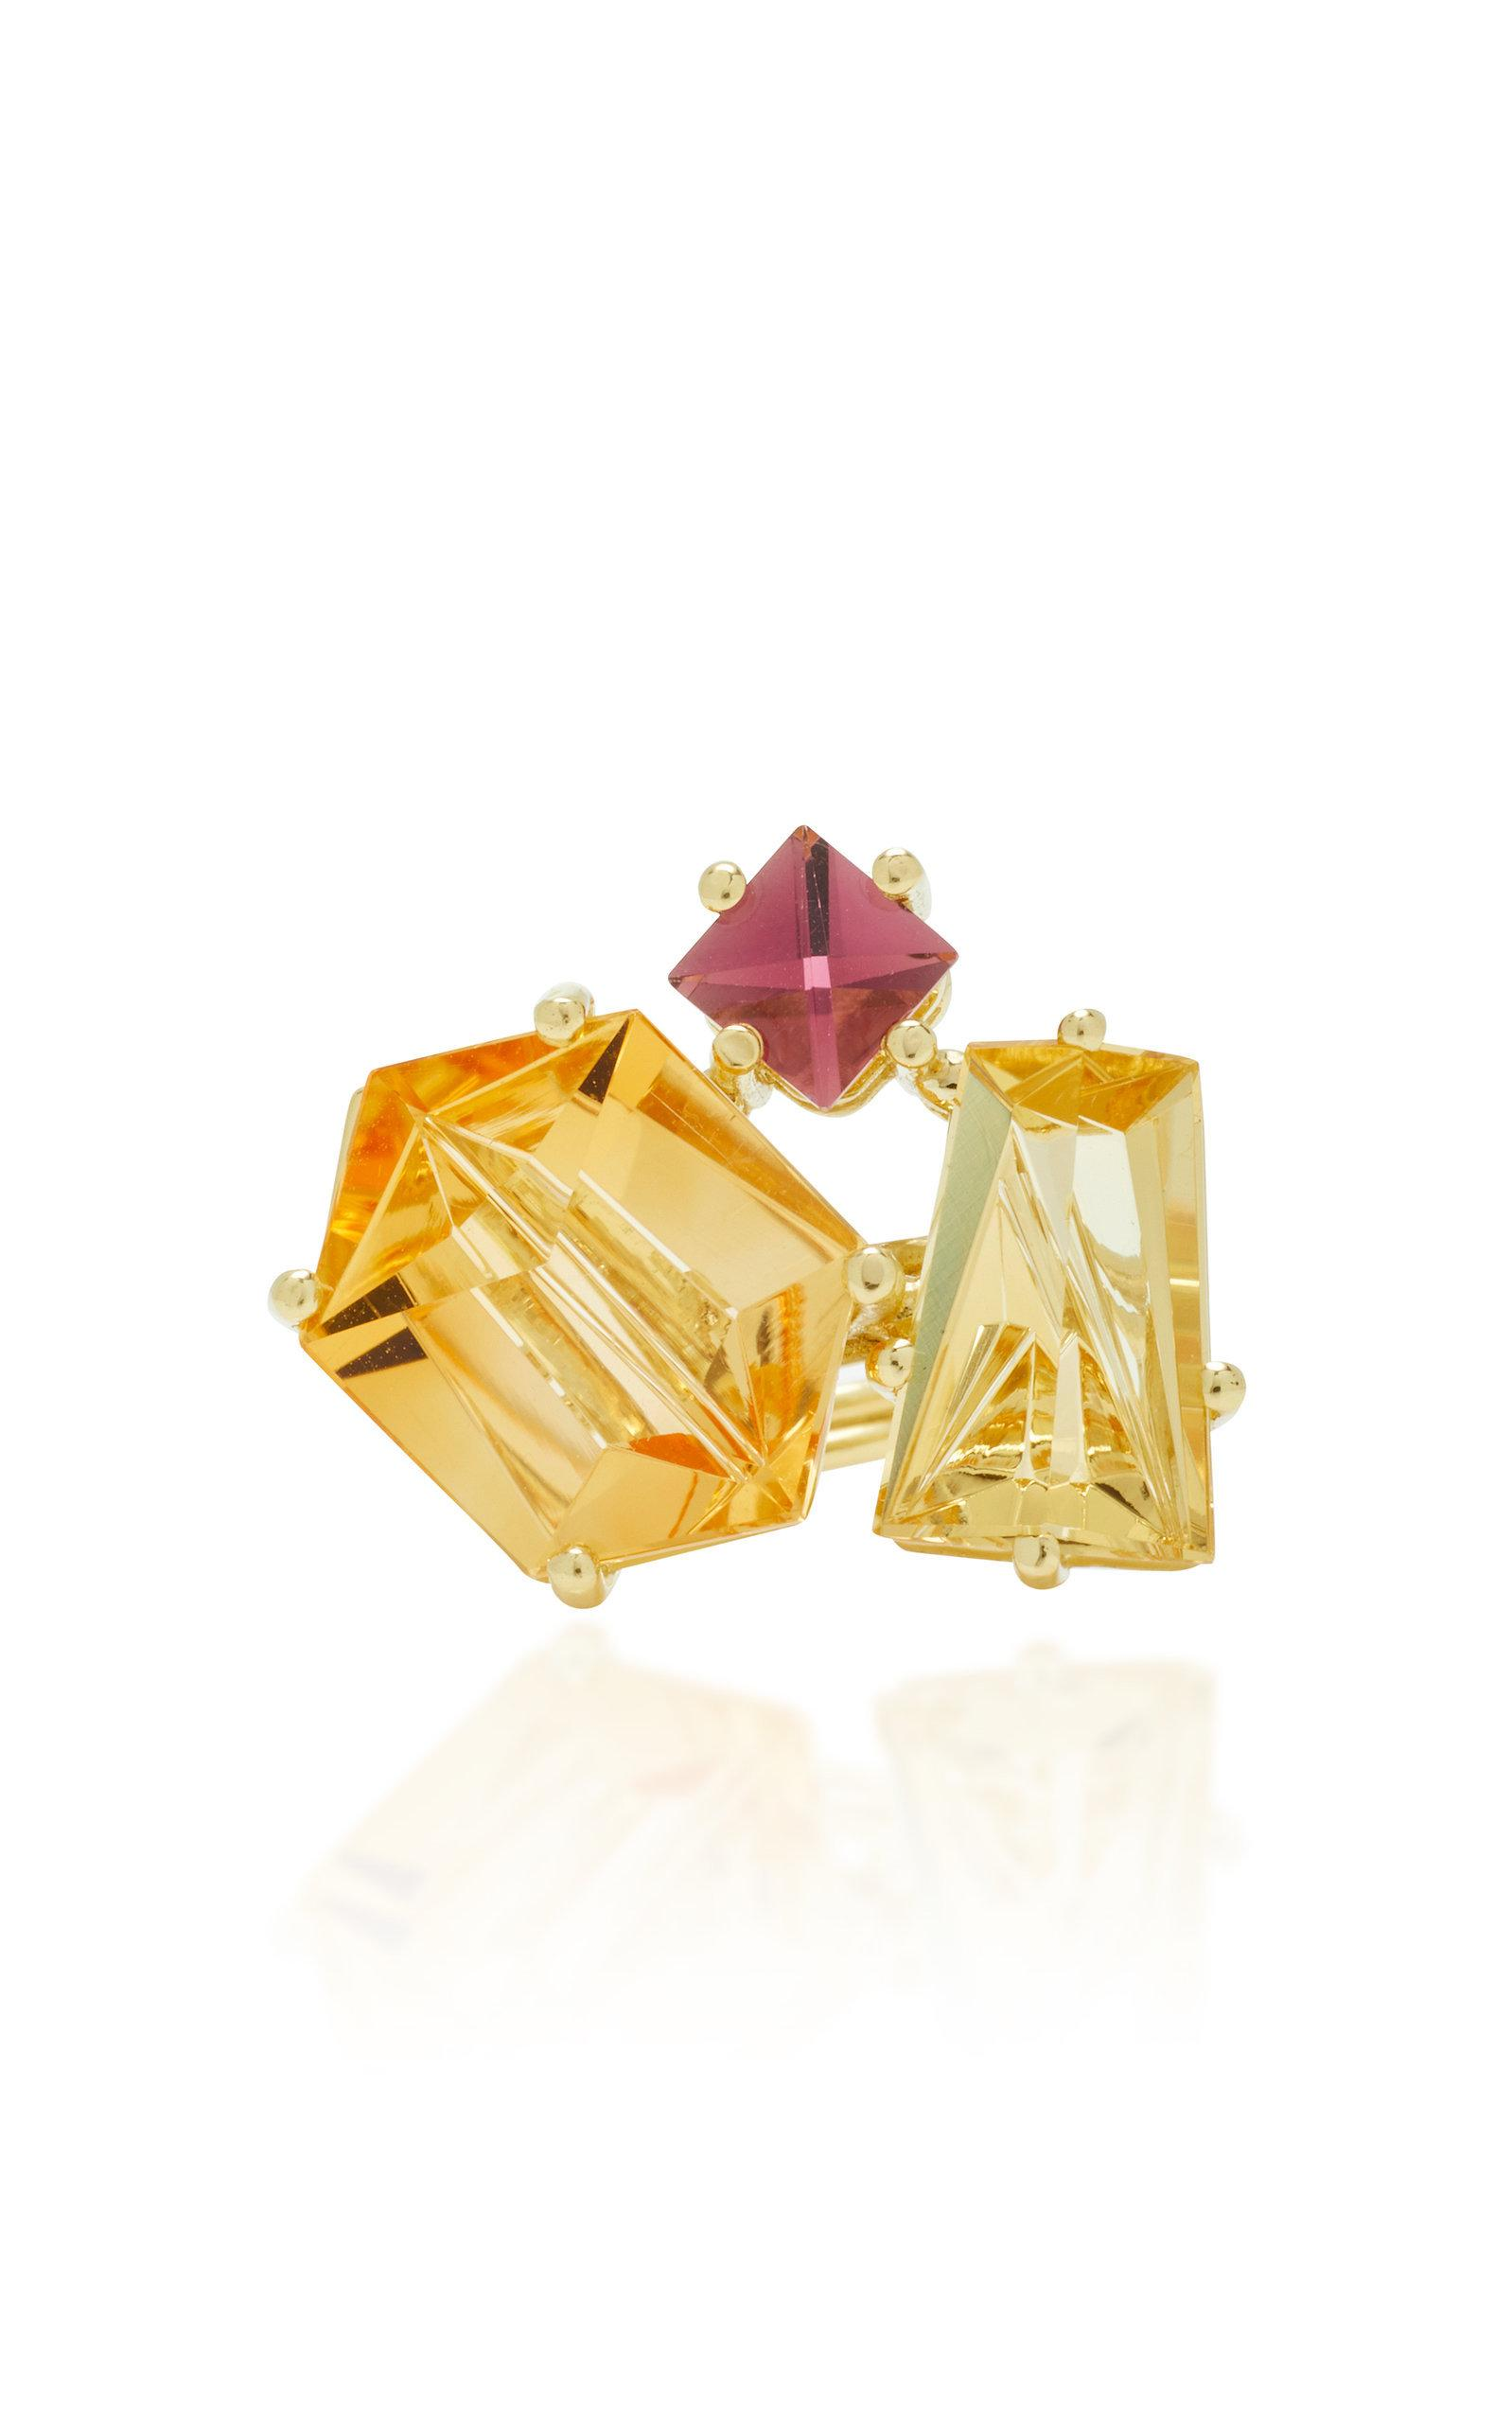 Misui One-of-a-kind 18k Gold Citrine And Beryl Ring In Orange